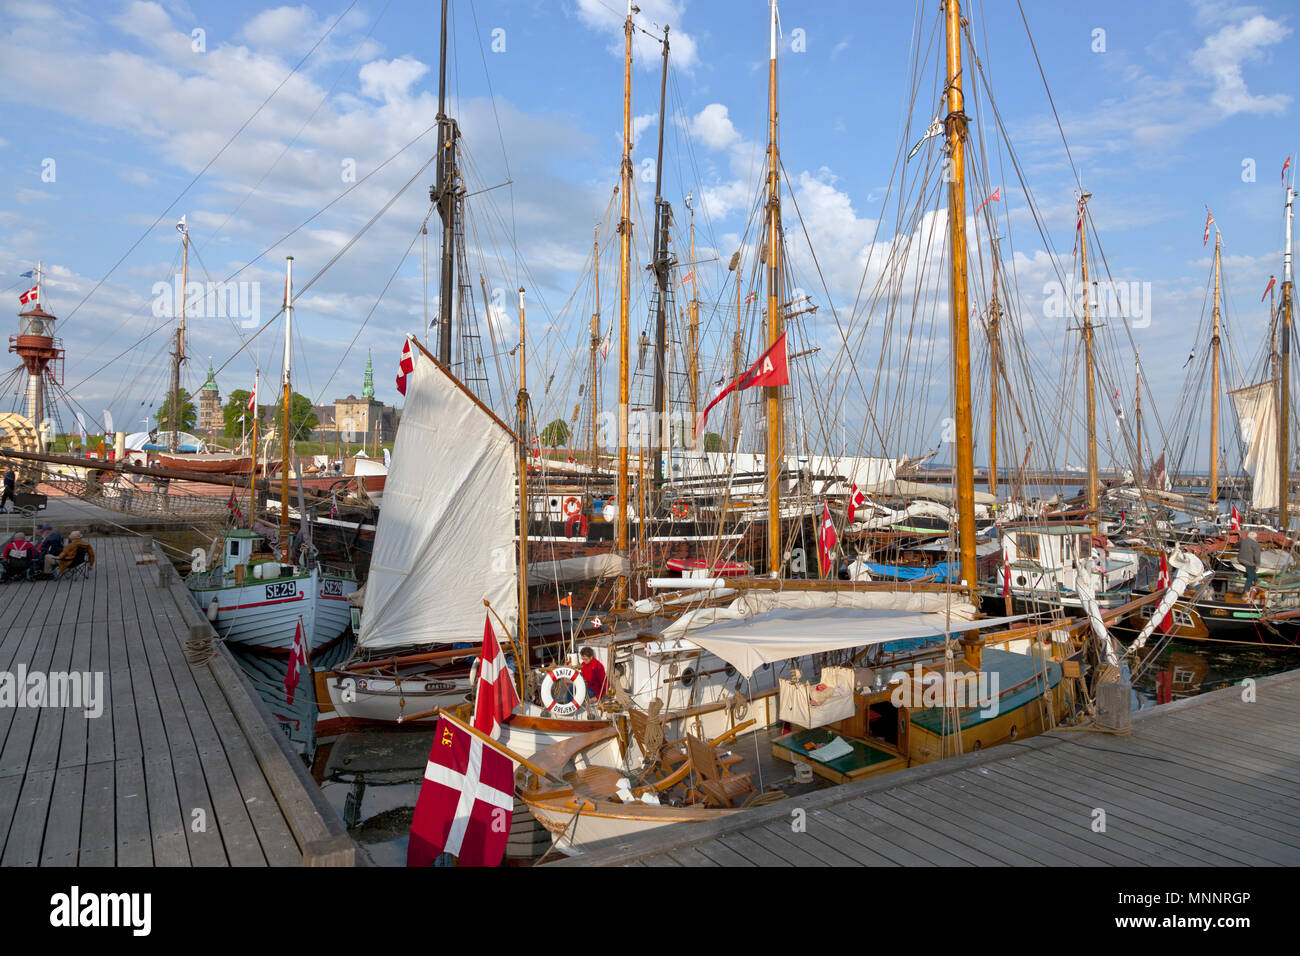 Historical days of more than 100 wooden ships in Elsinore Culture Harbour at Pentecost or Whitsun in Helsingør, Elsinore, Denmark. Kronborg Castle. Stock Photo